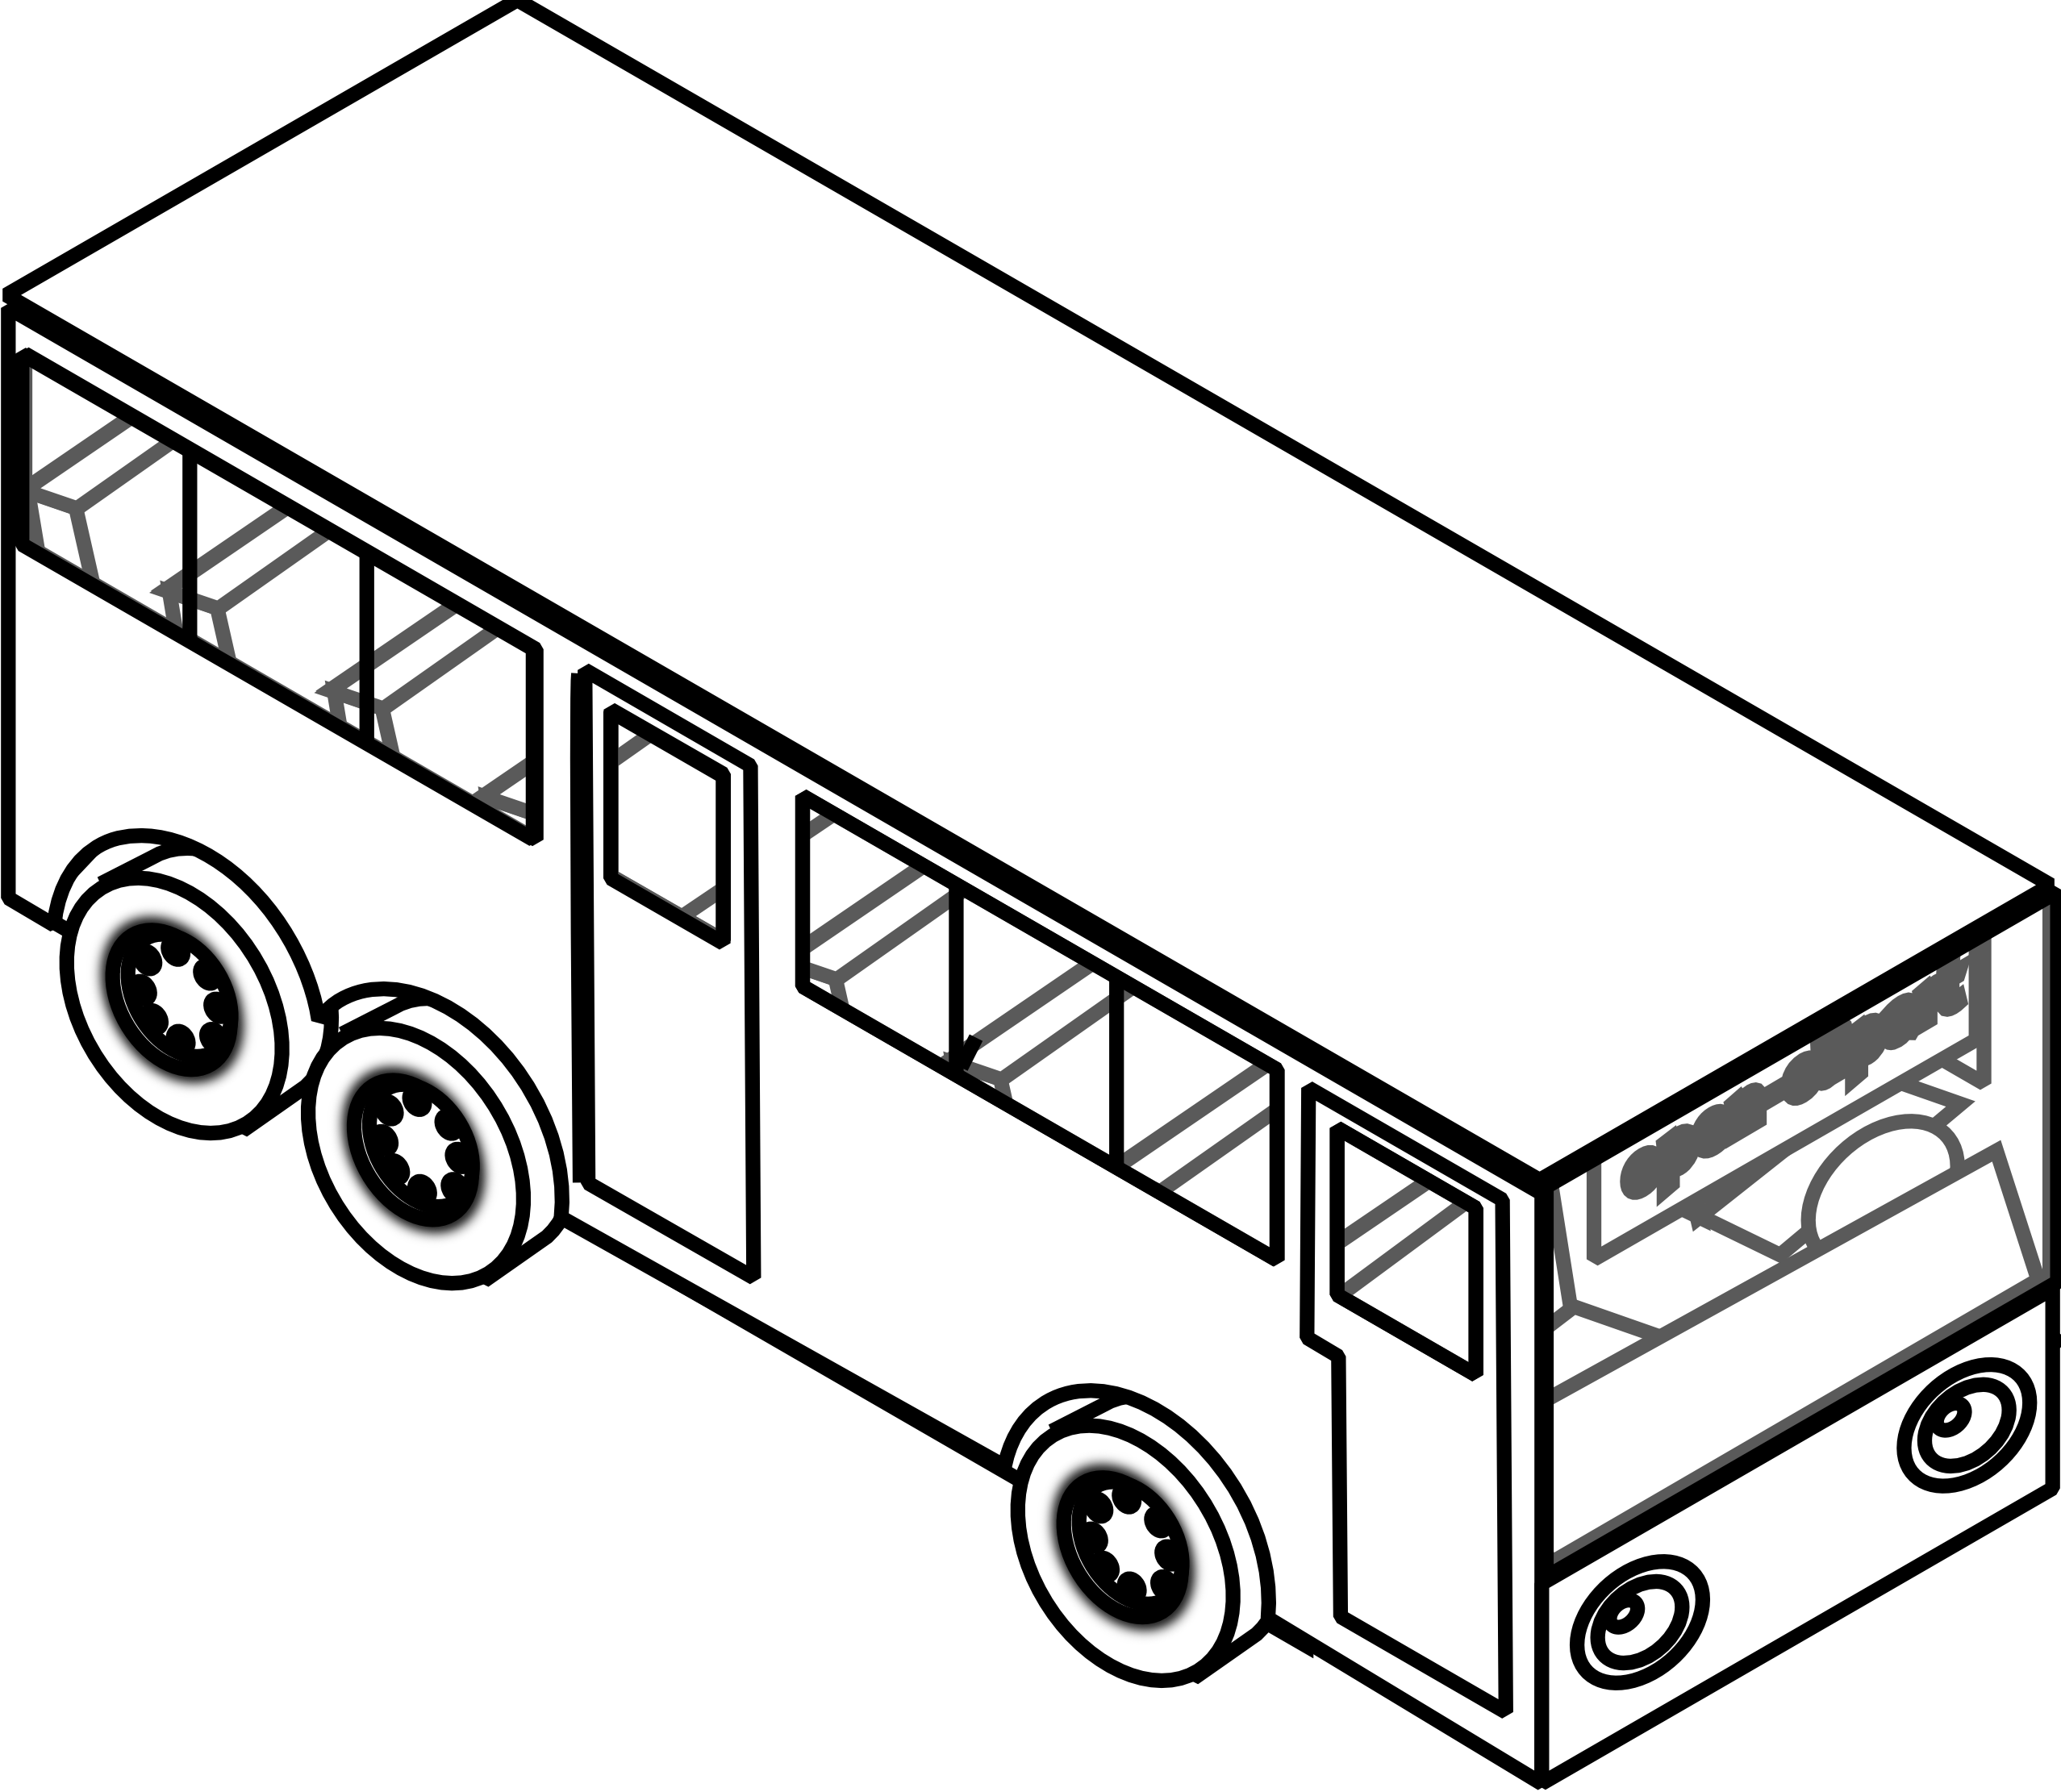 Muddy car clipart jpg transparent library Bus black and white bus clipart black and white free images ... jpg transparent library